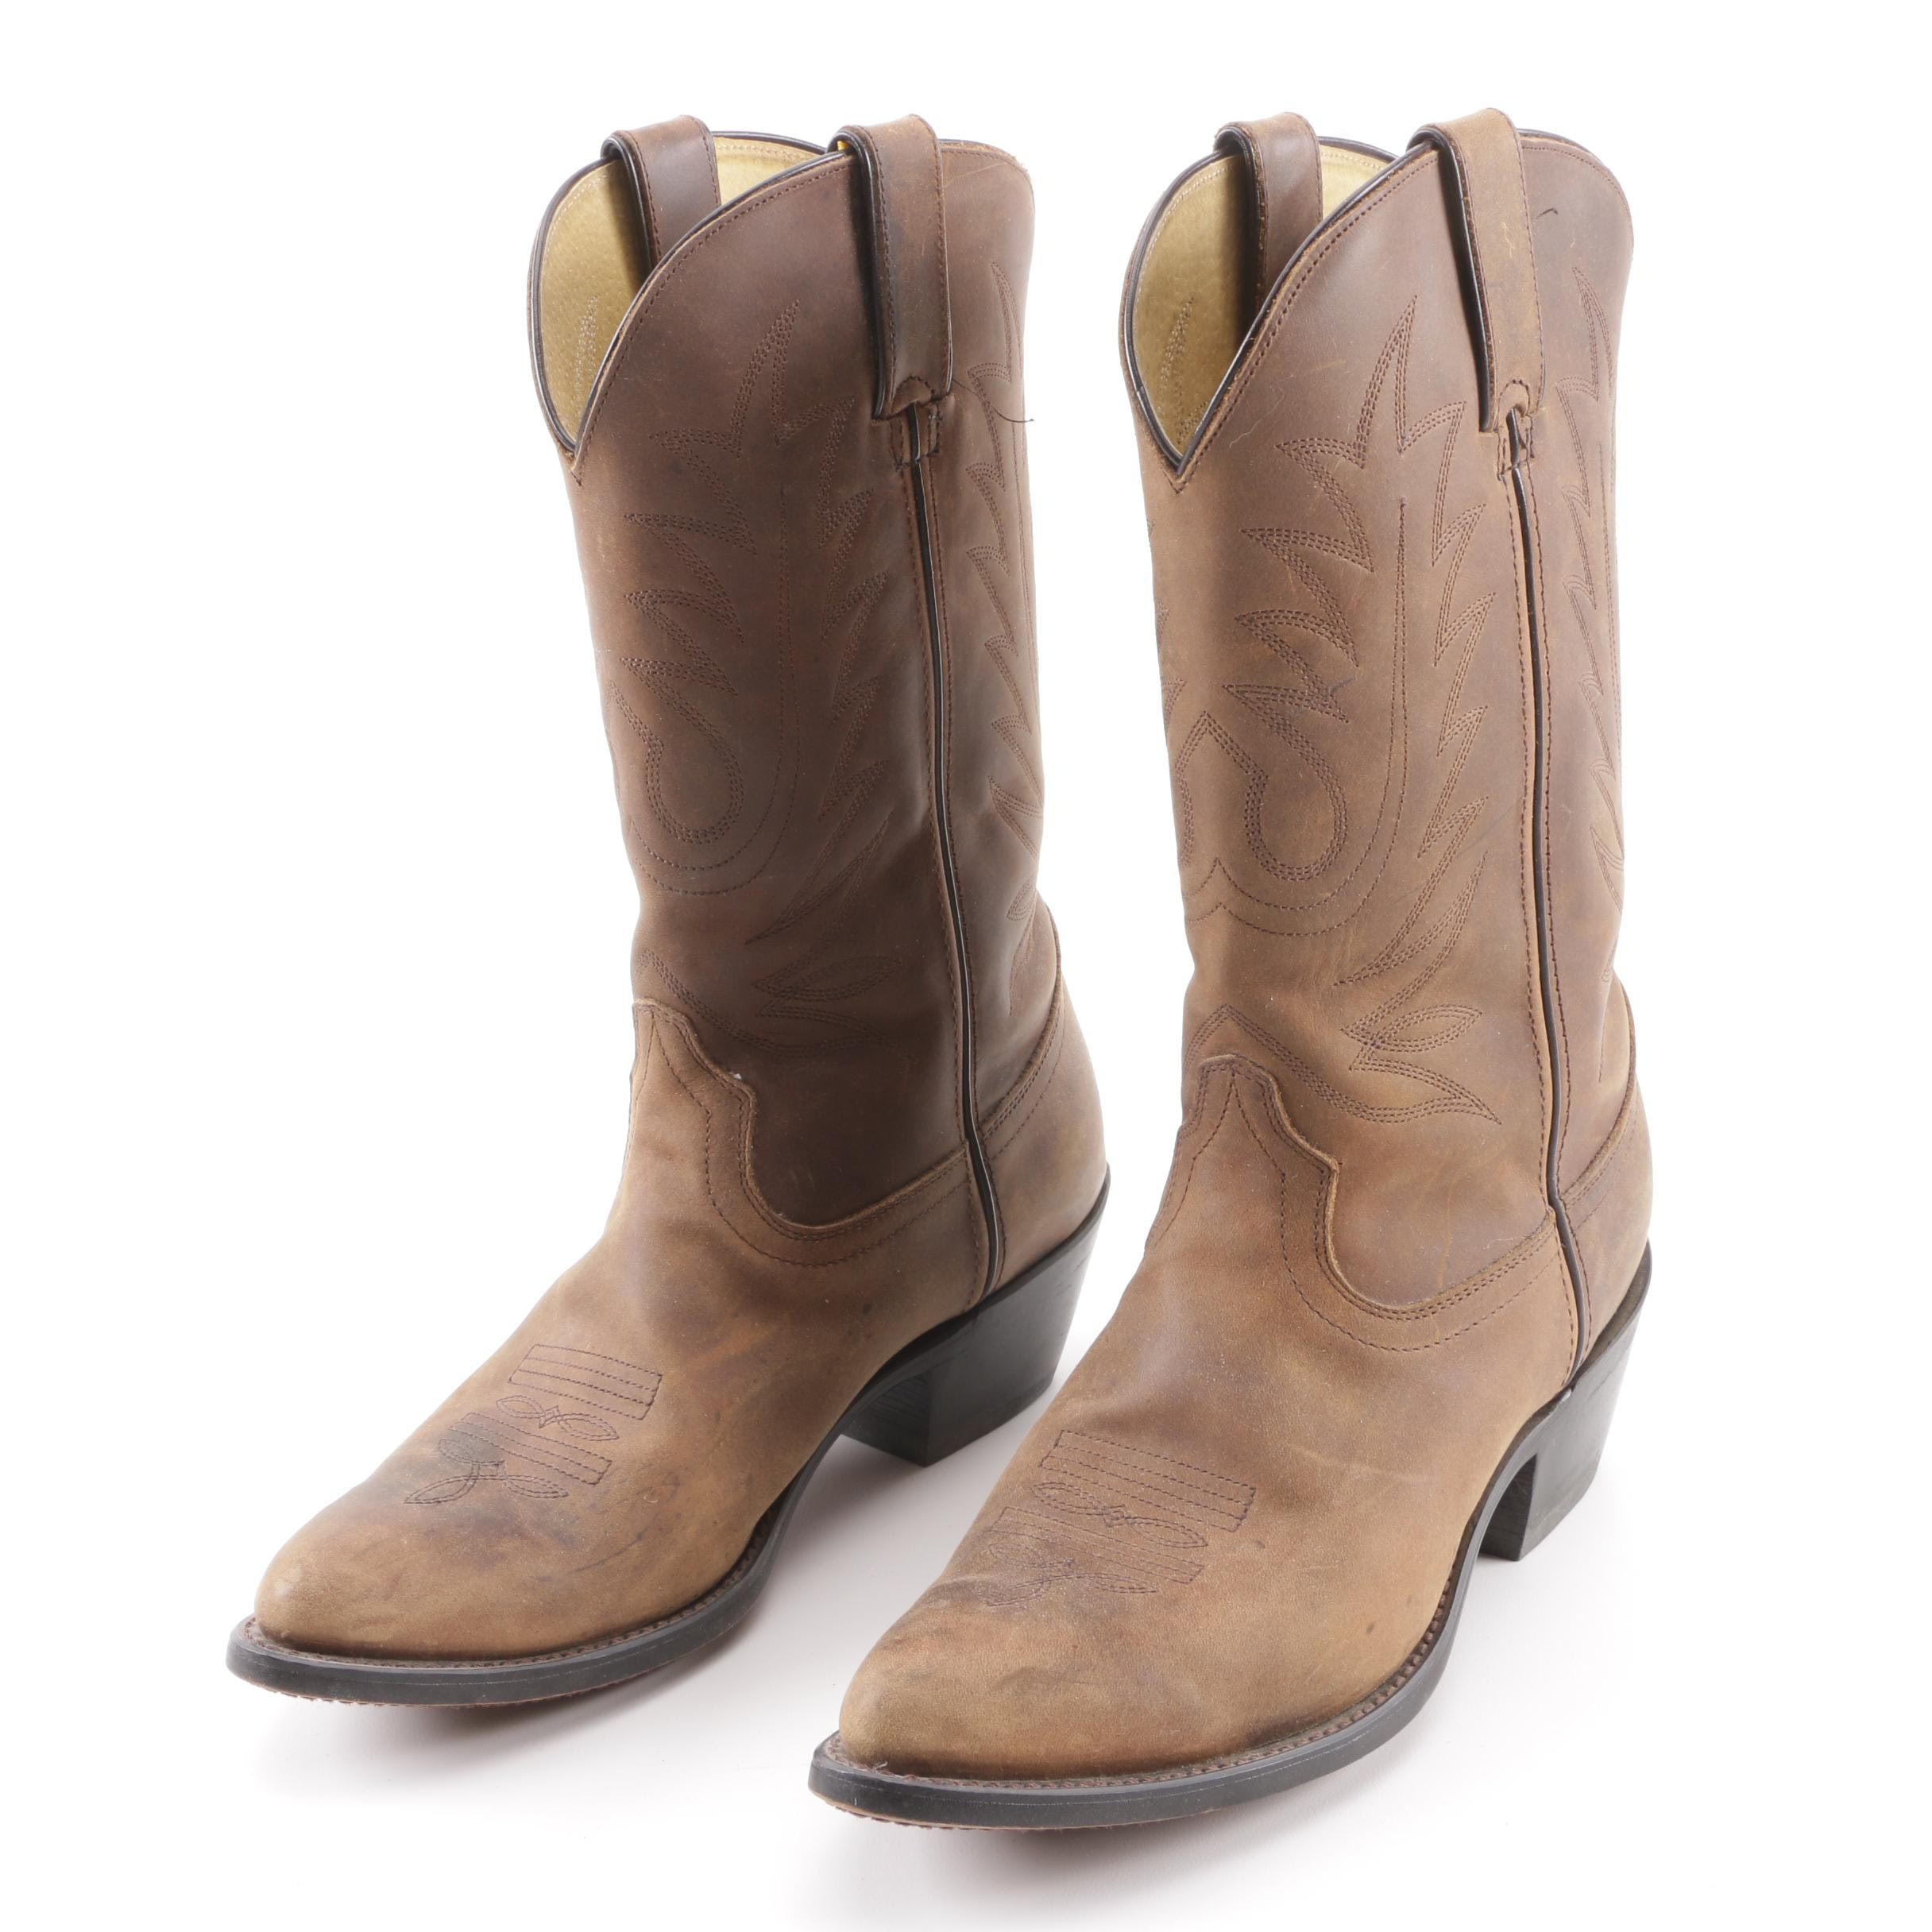 Women's Durango RD4112 Tan Leather Western Boots